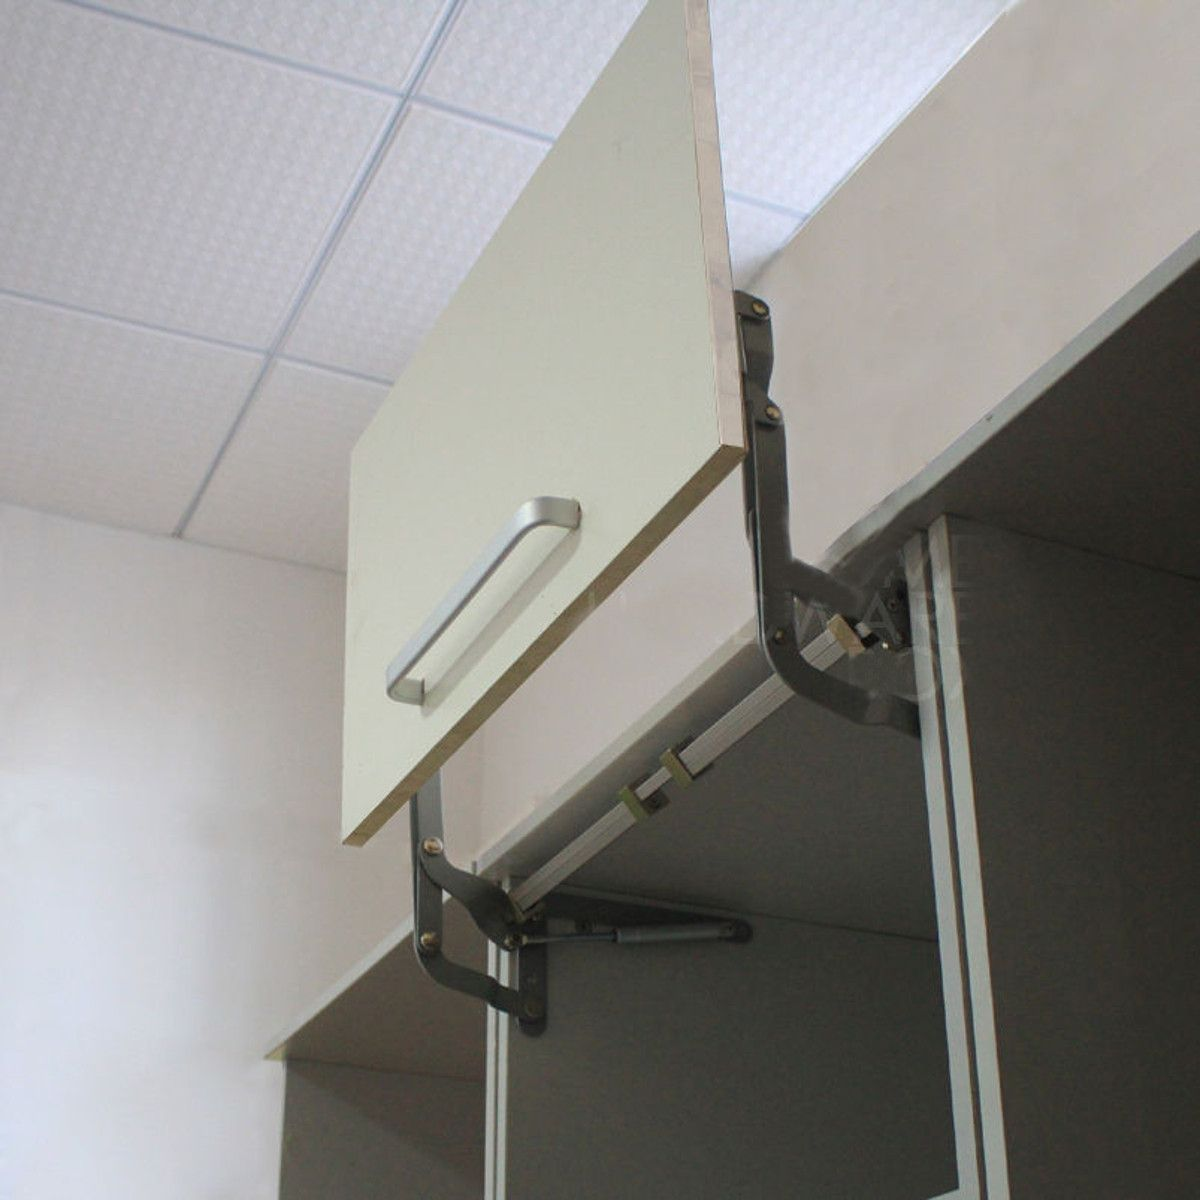 Arm Mechanism Hinges Vertical Swing Lift Up Stay Pneumatic For Cabinet Boggle Up Glass Door Hinges Cabinet Doors Kitchen Cabinet Doors